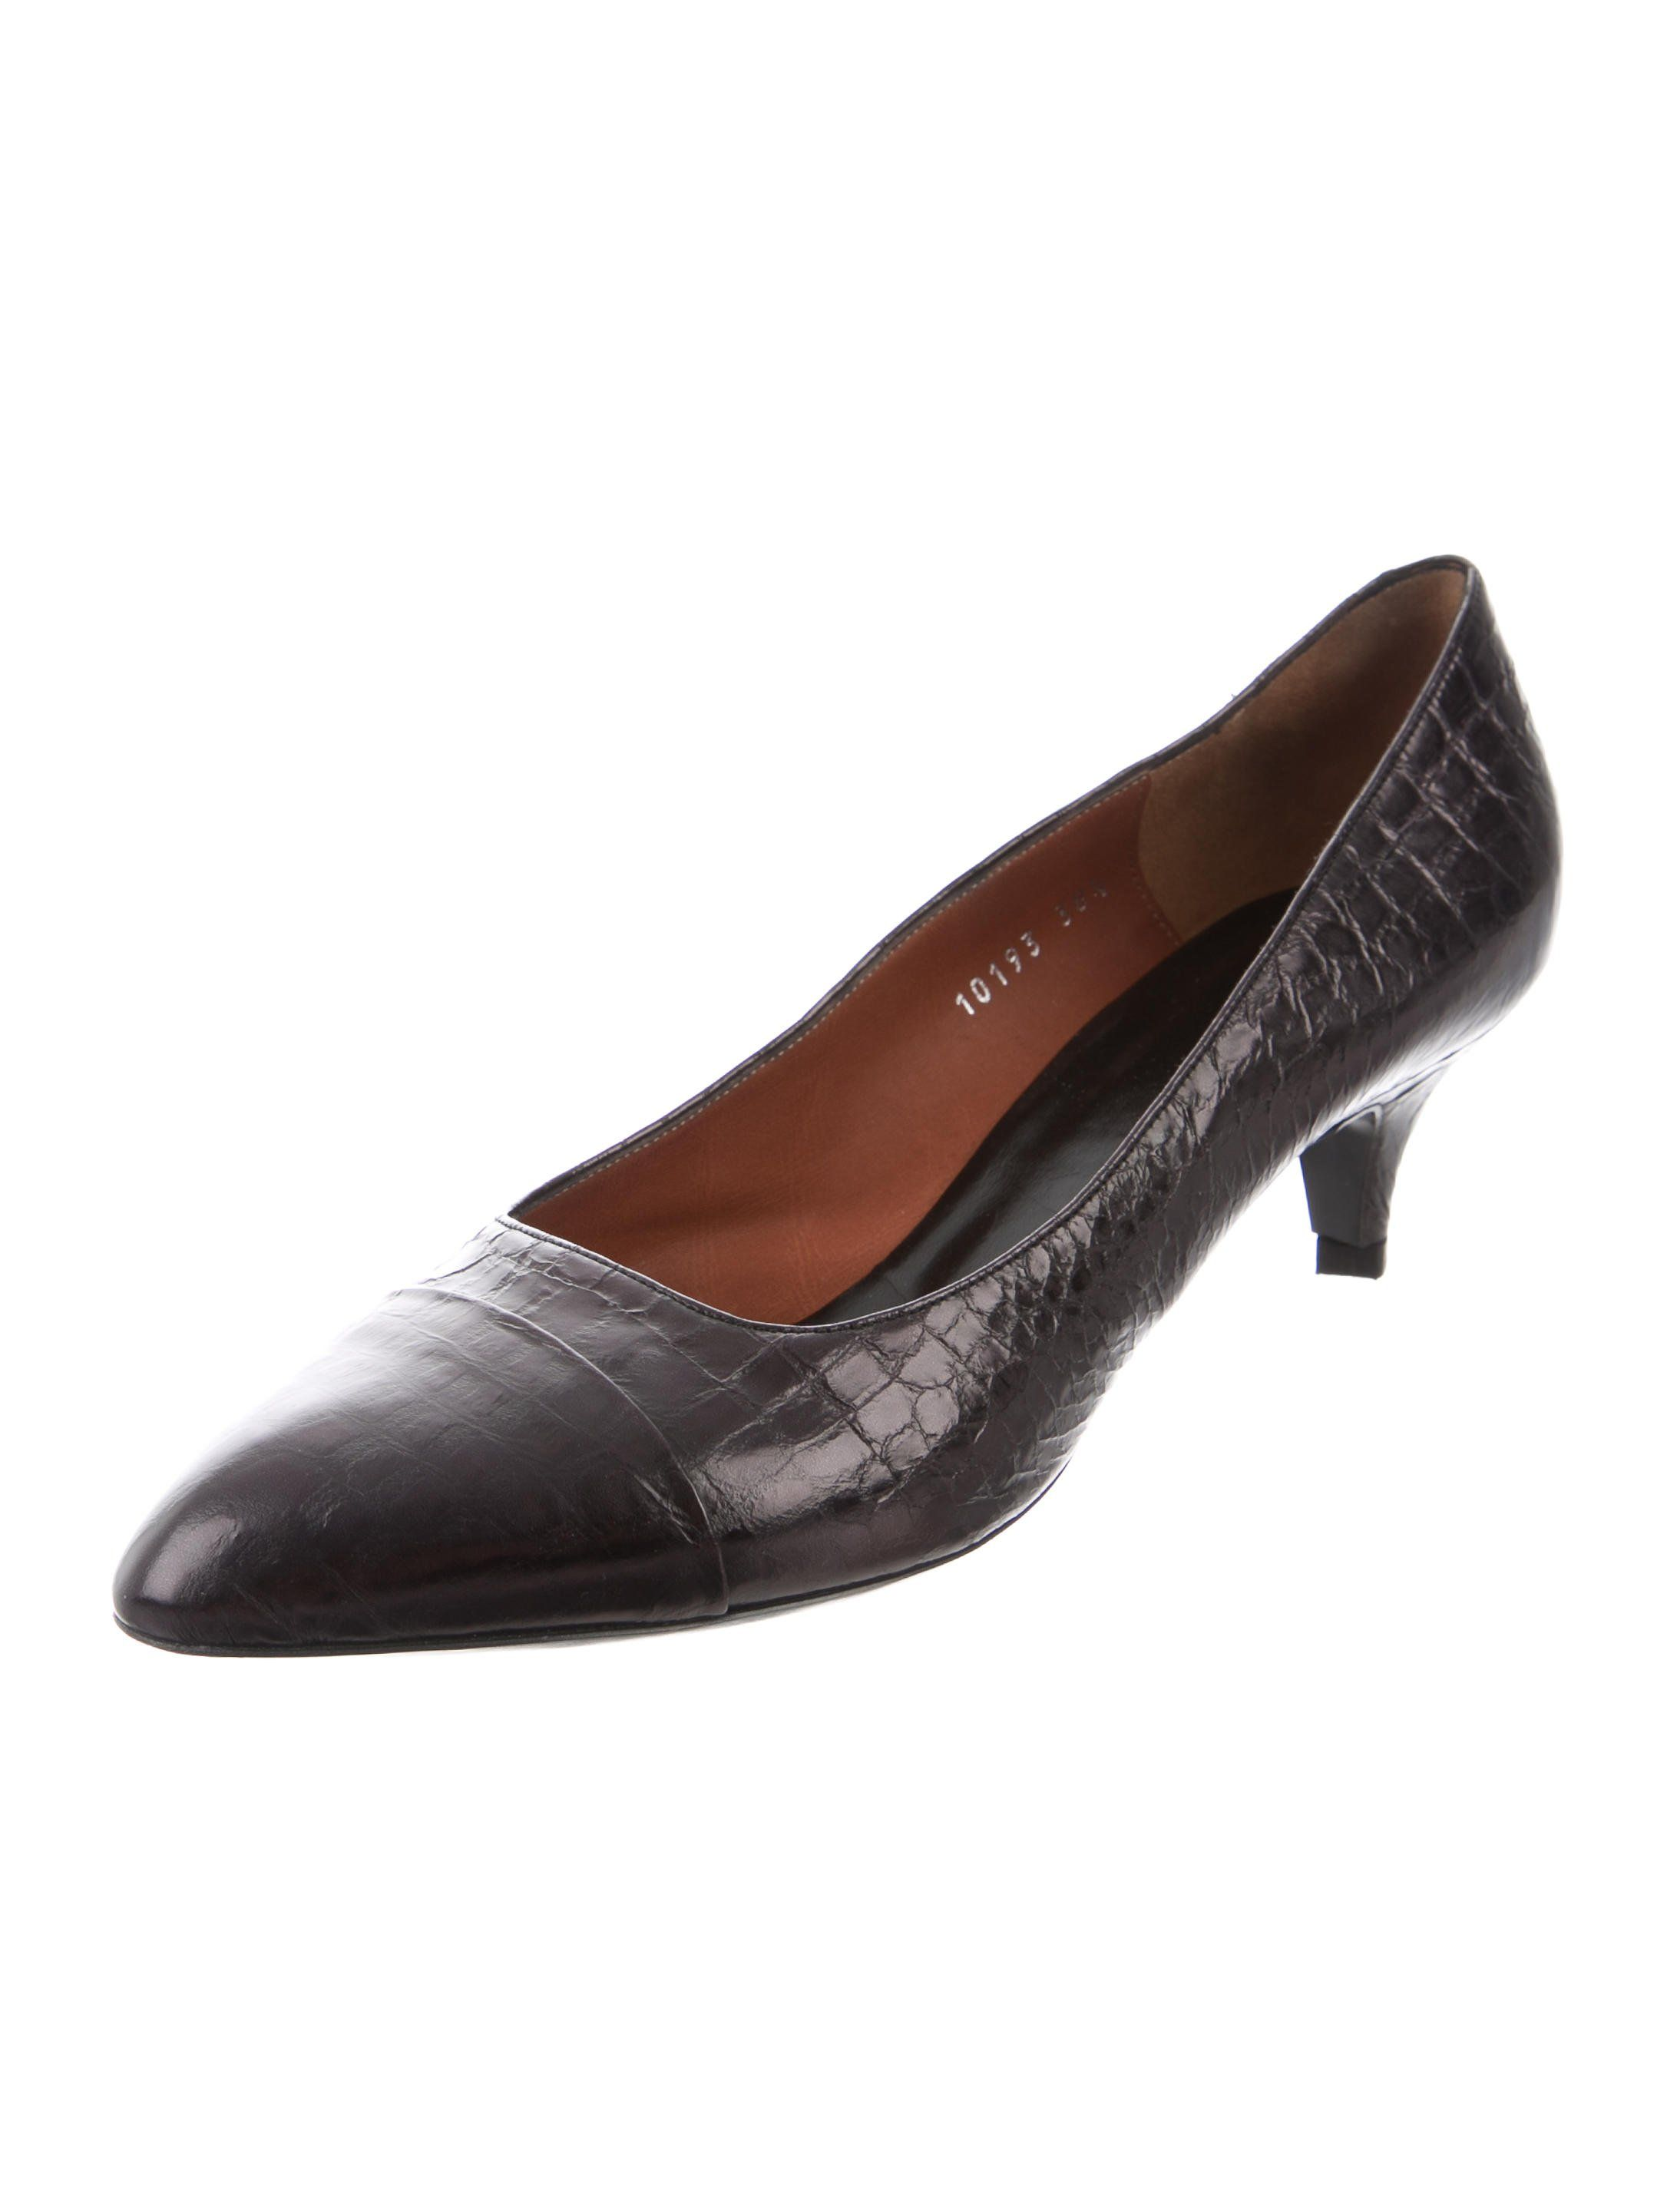 3a859b73bd Black embossed leather Dries Van Noten round-toe pumps with cap-toes and  covered heels.